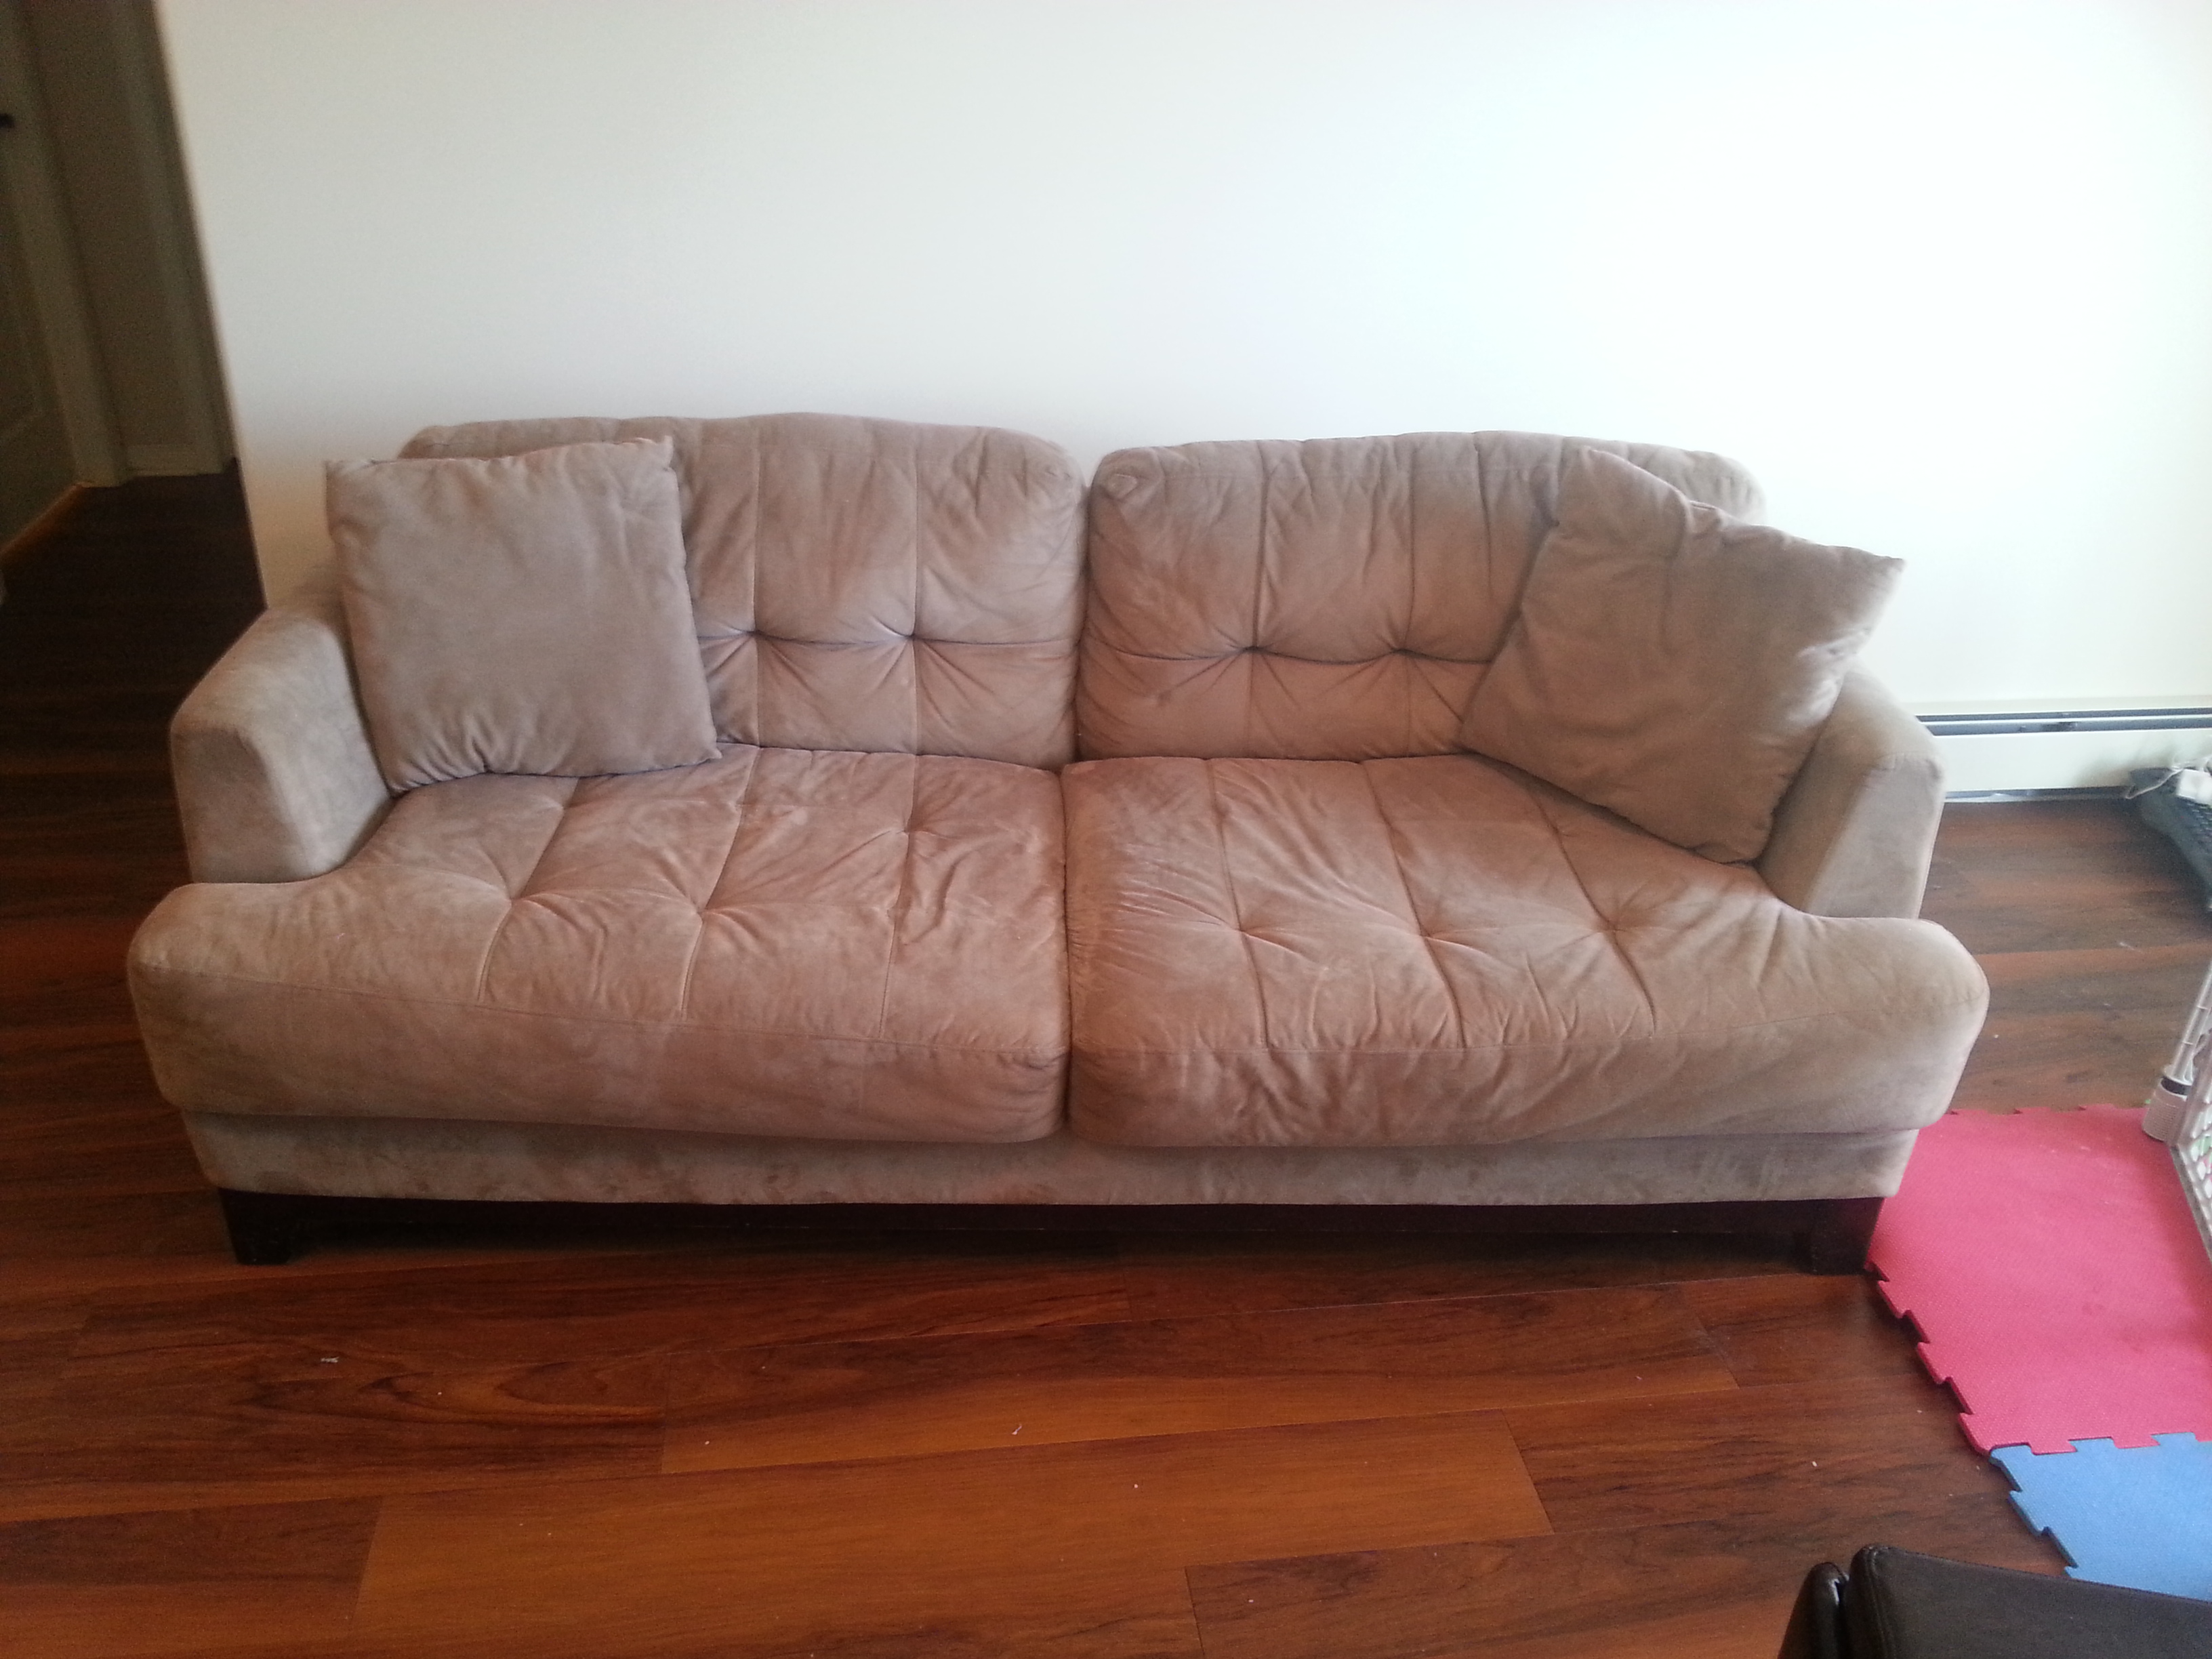 leon s sofas danish sofa bed vintage couch 43 2 cushions from leons furniture 43free ikea